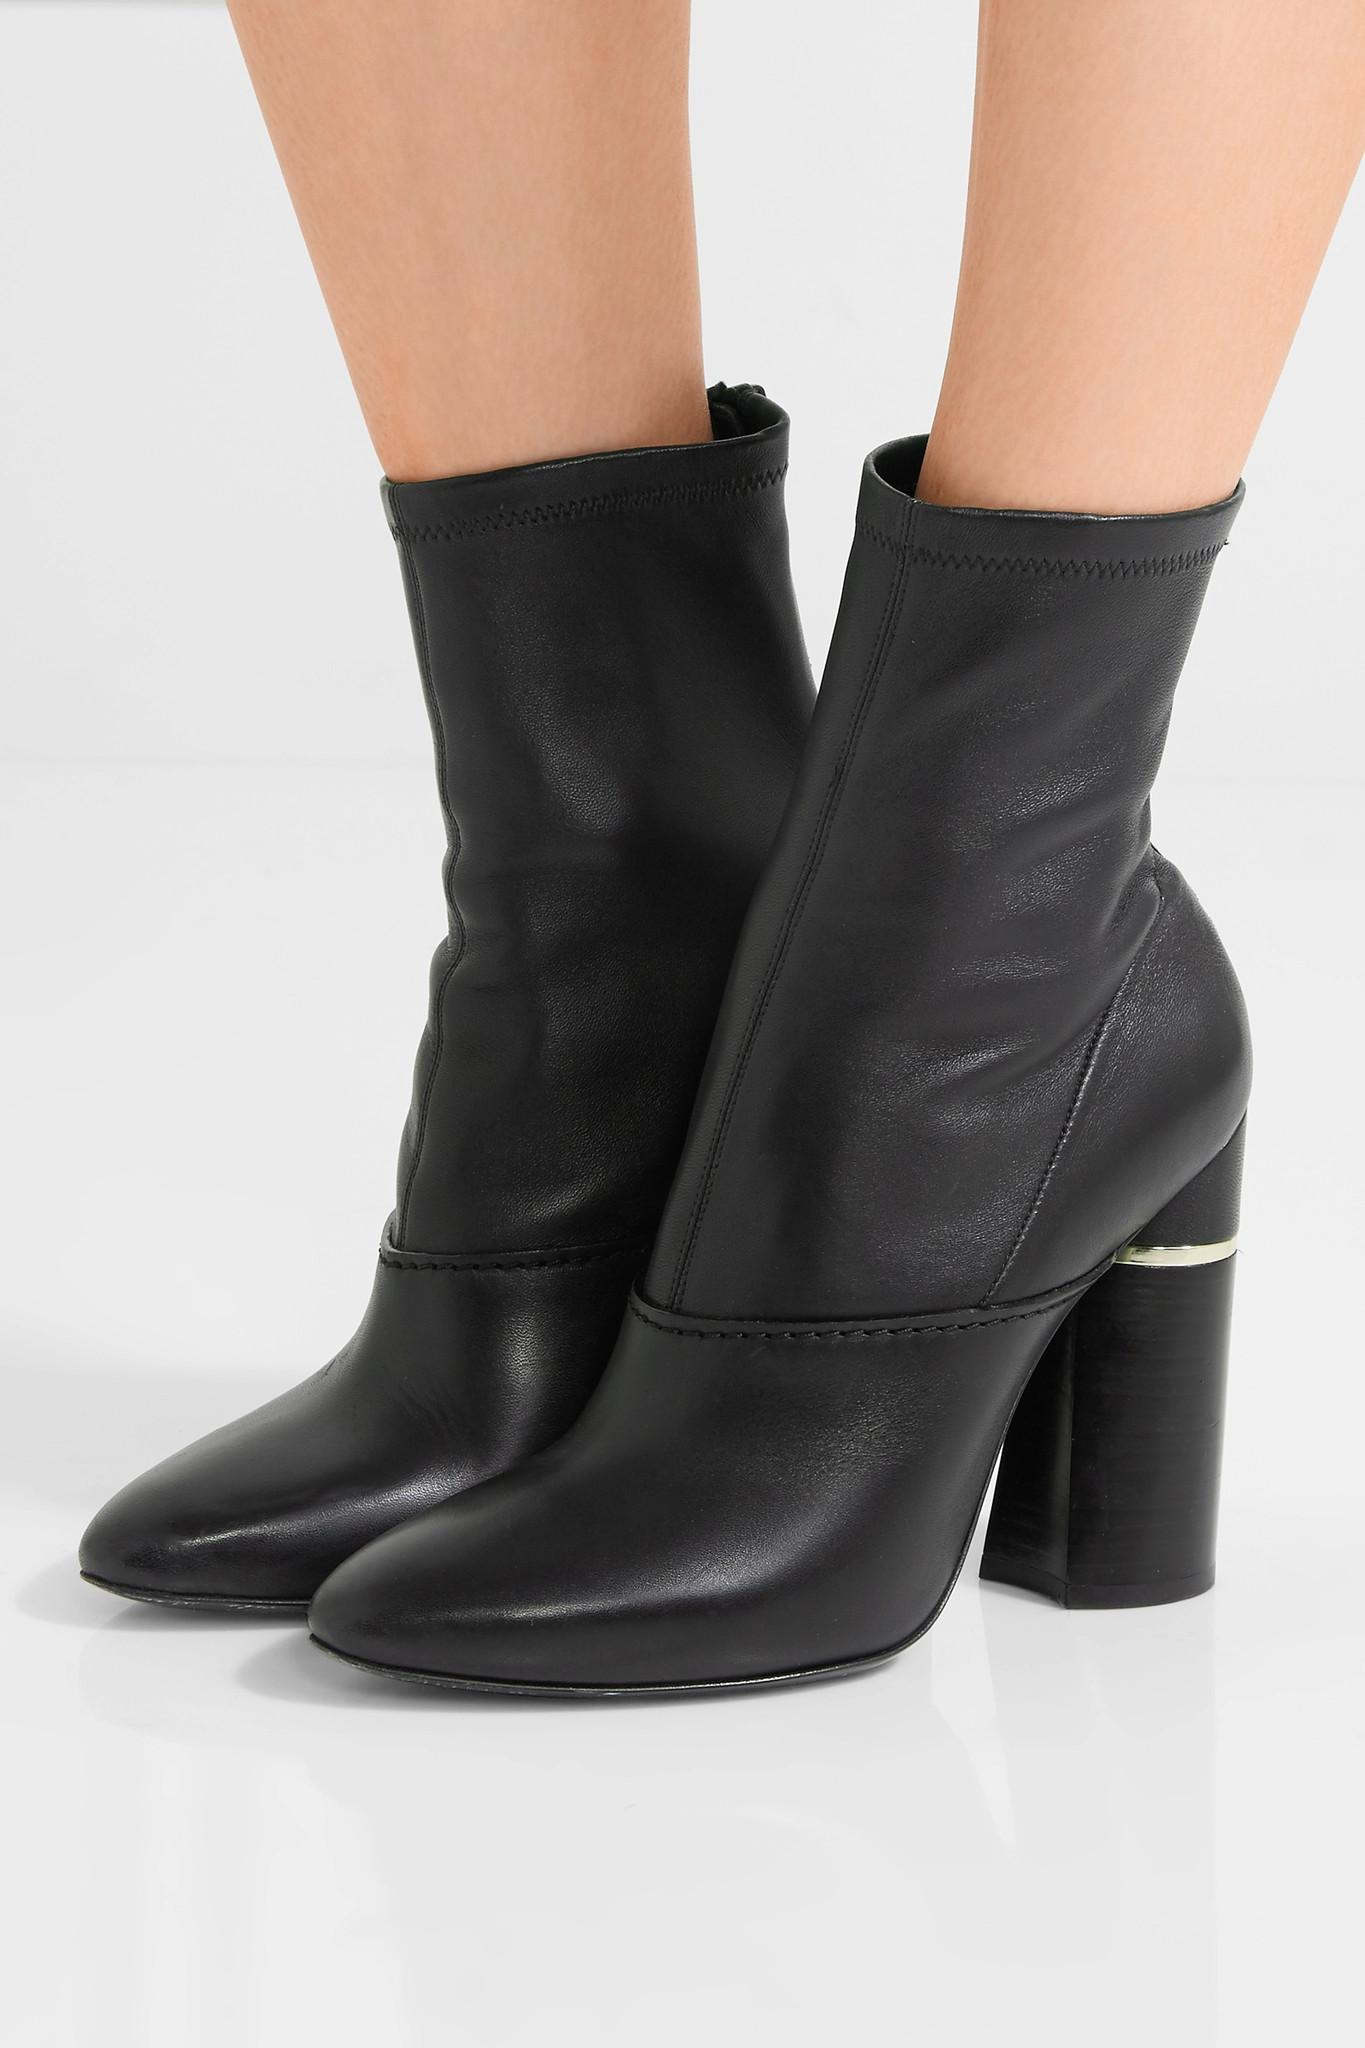 3.1 Phillip Lim Kyoto Leather Ankle Boots countdown package mkQnCWk